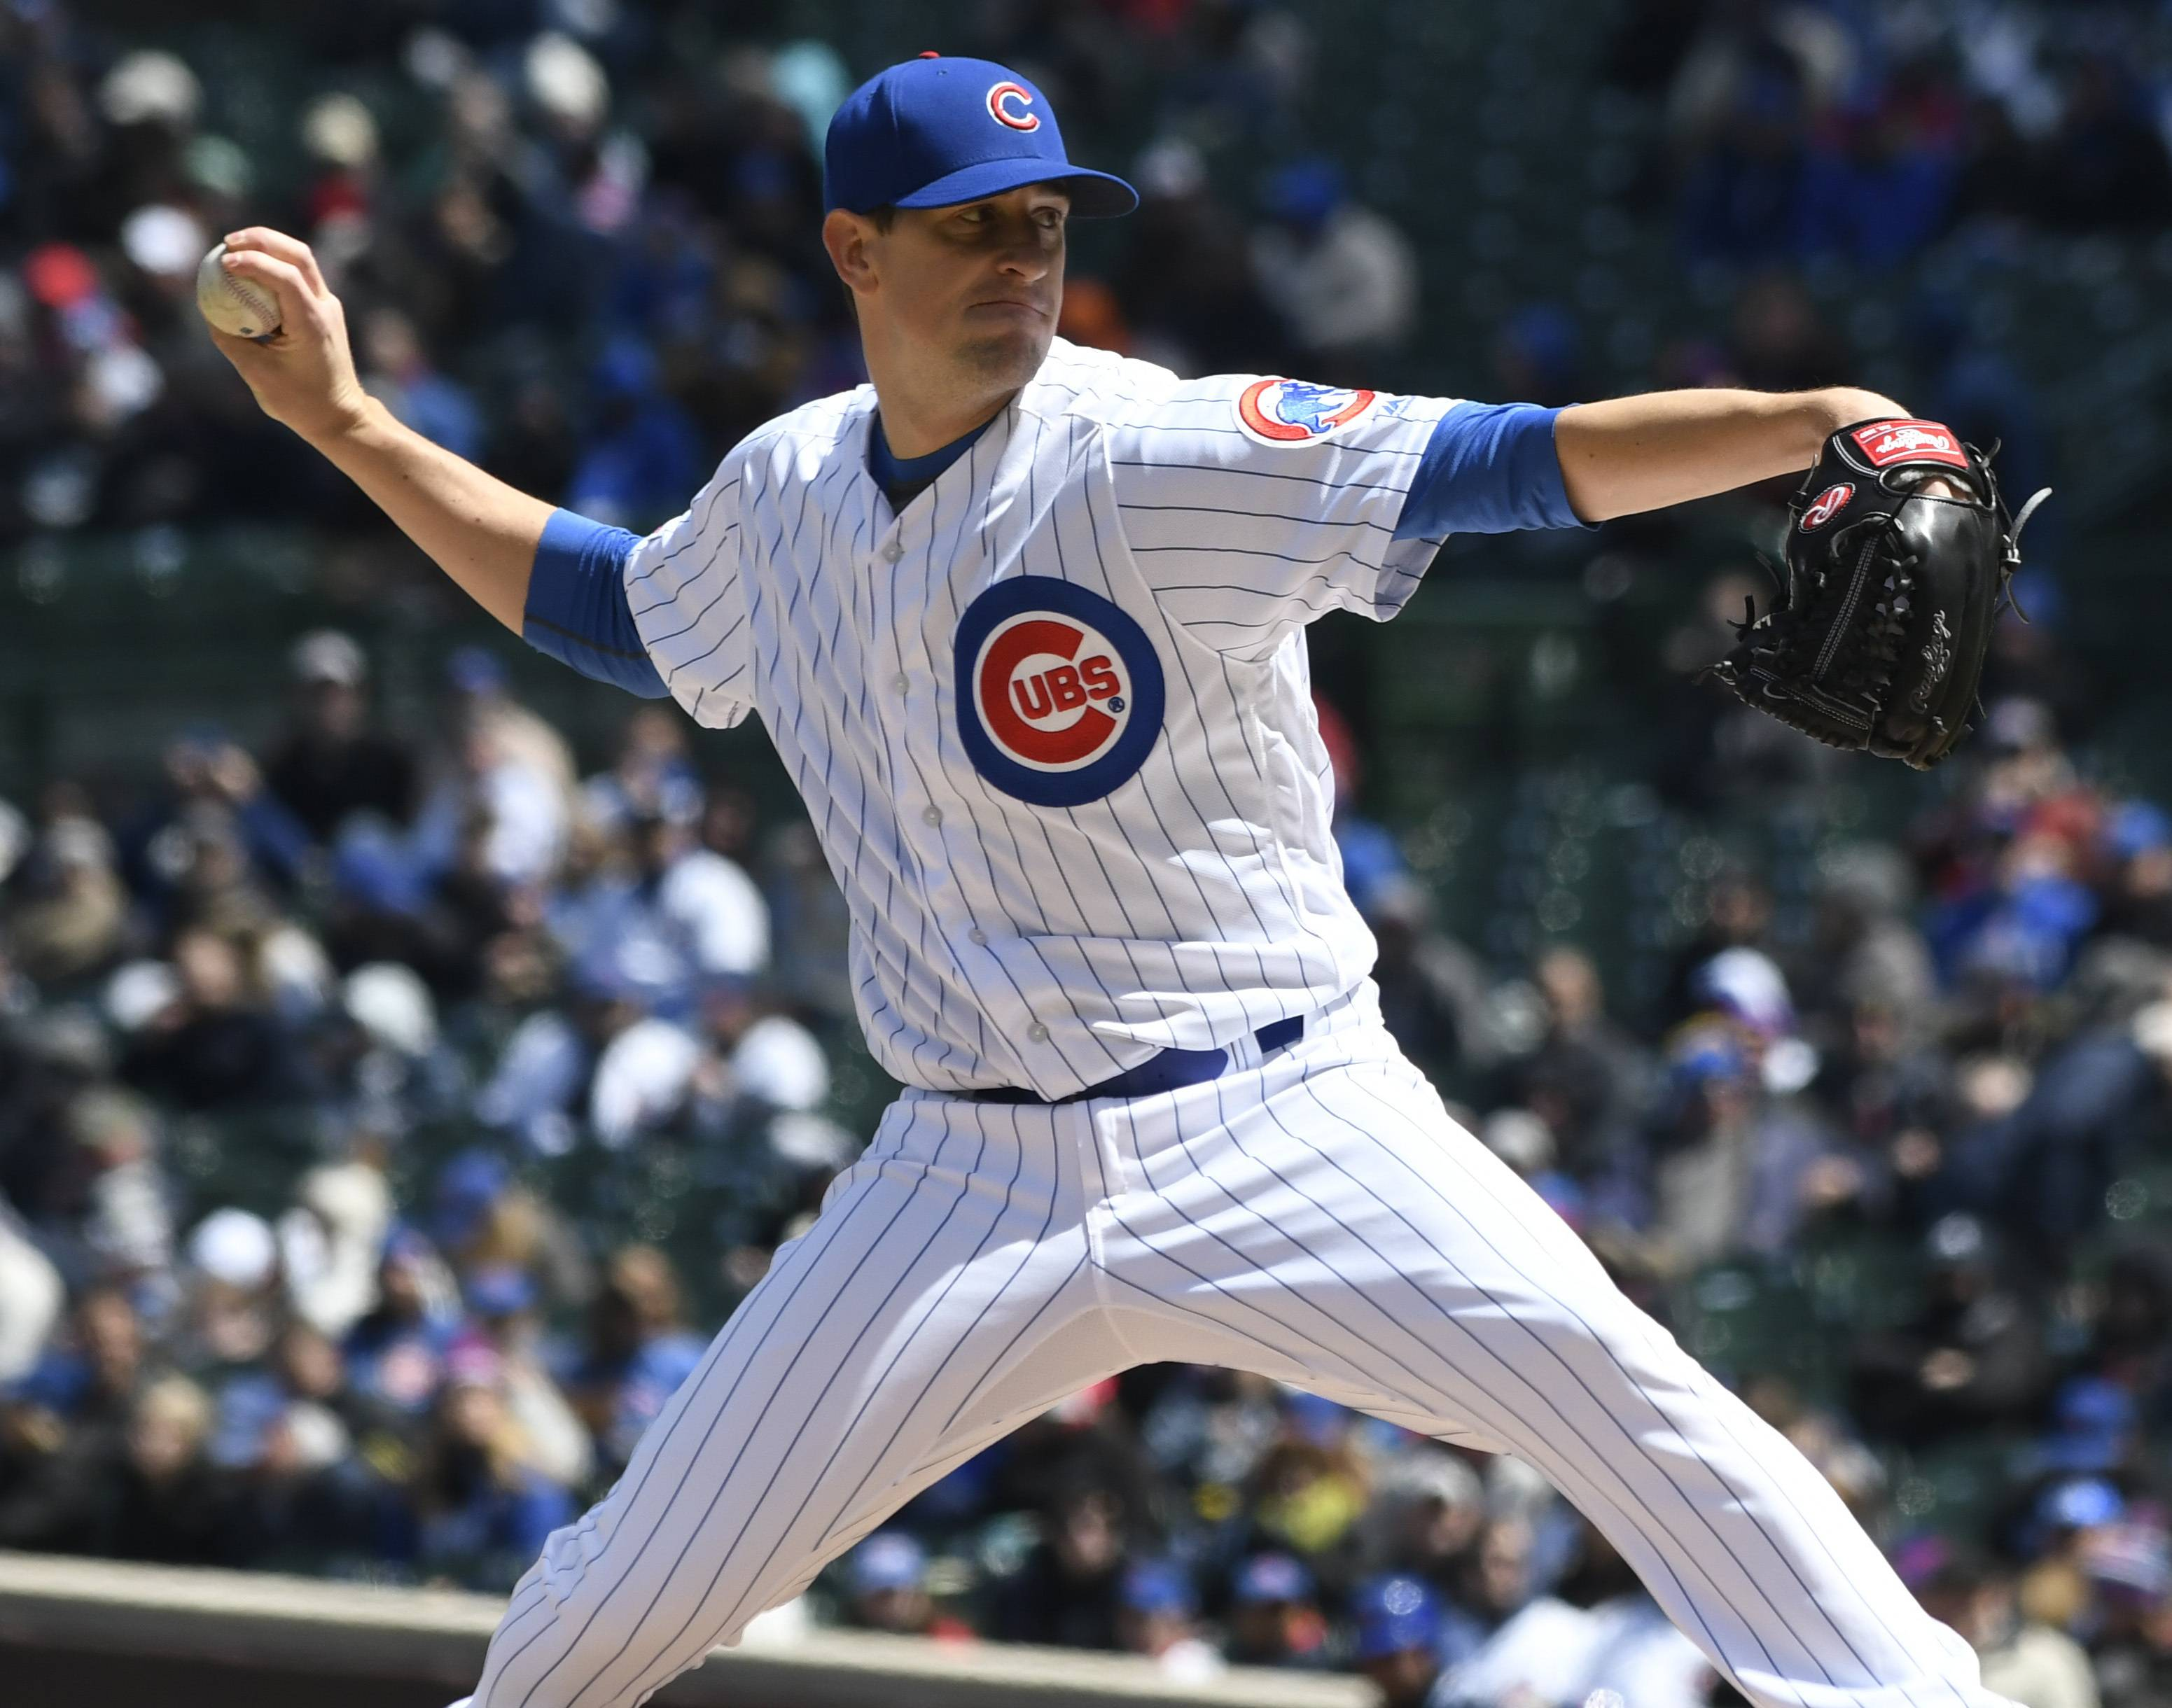 Chicago Cubs starting pitcher Kyle Hendricks (28) throws against the Arizona Diamondbacks during the first inning Friday in Chicago. Hendricks turned in the third straight game of 7 innings without giving up a run, joining Cole Hamels and Jose Quintana. It was Hendricks' first quality start of the season.